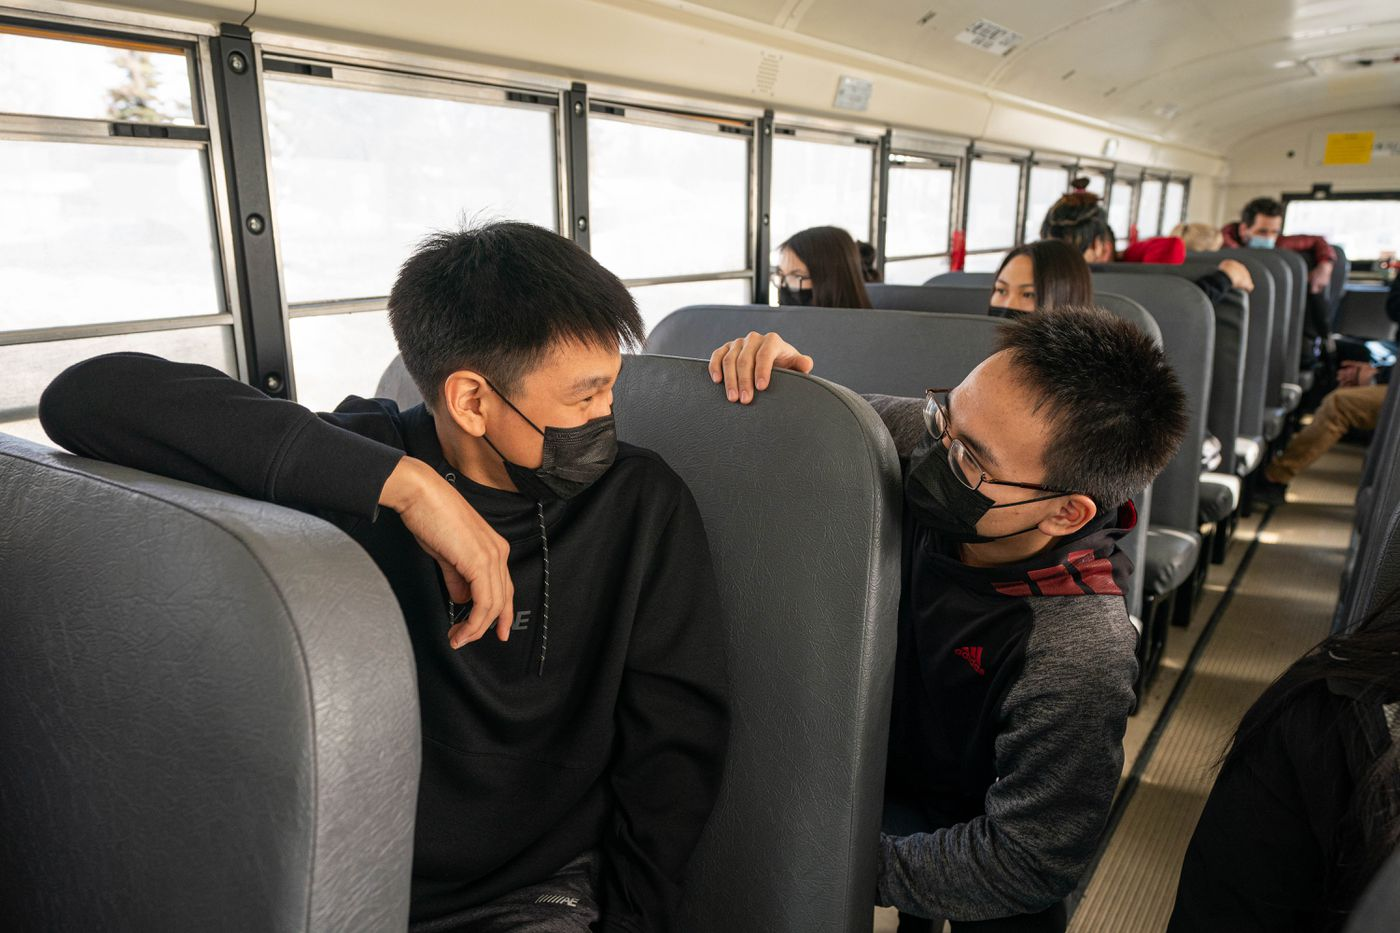 Zachary Isaac, left, and Kyan Paul talk on the school bus after finishing a class at King Tech High School on April 2, 2021. Isaac is from Marshall and Paul is from Pilot Station, which are neighboring villages on the lower Yukon River, and both attend Kusilvak Career Academy in Anchorage. (Loren Holmes / ADN)